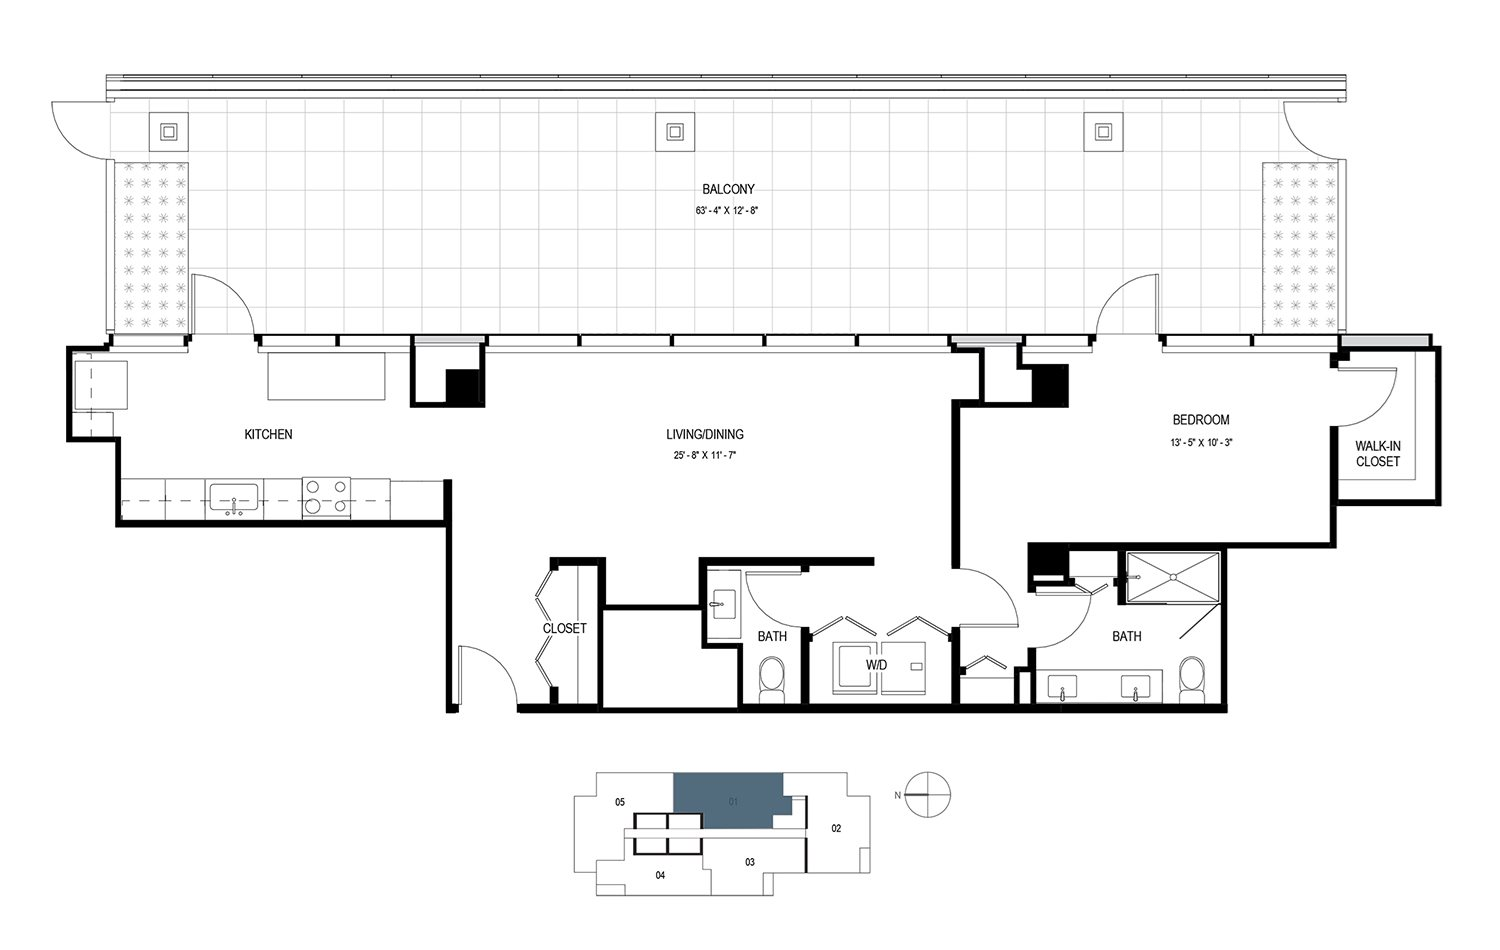 One Bedroom Penthouse (1080 sf) Floor Plan 15